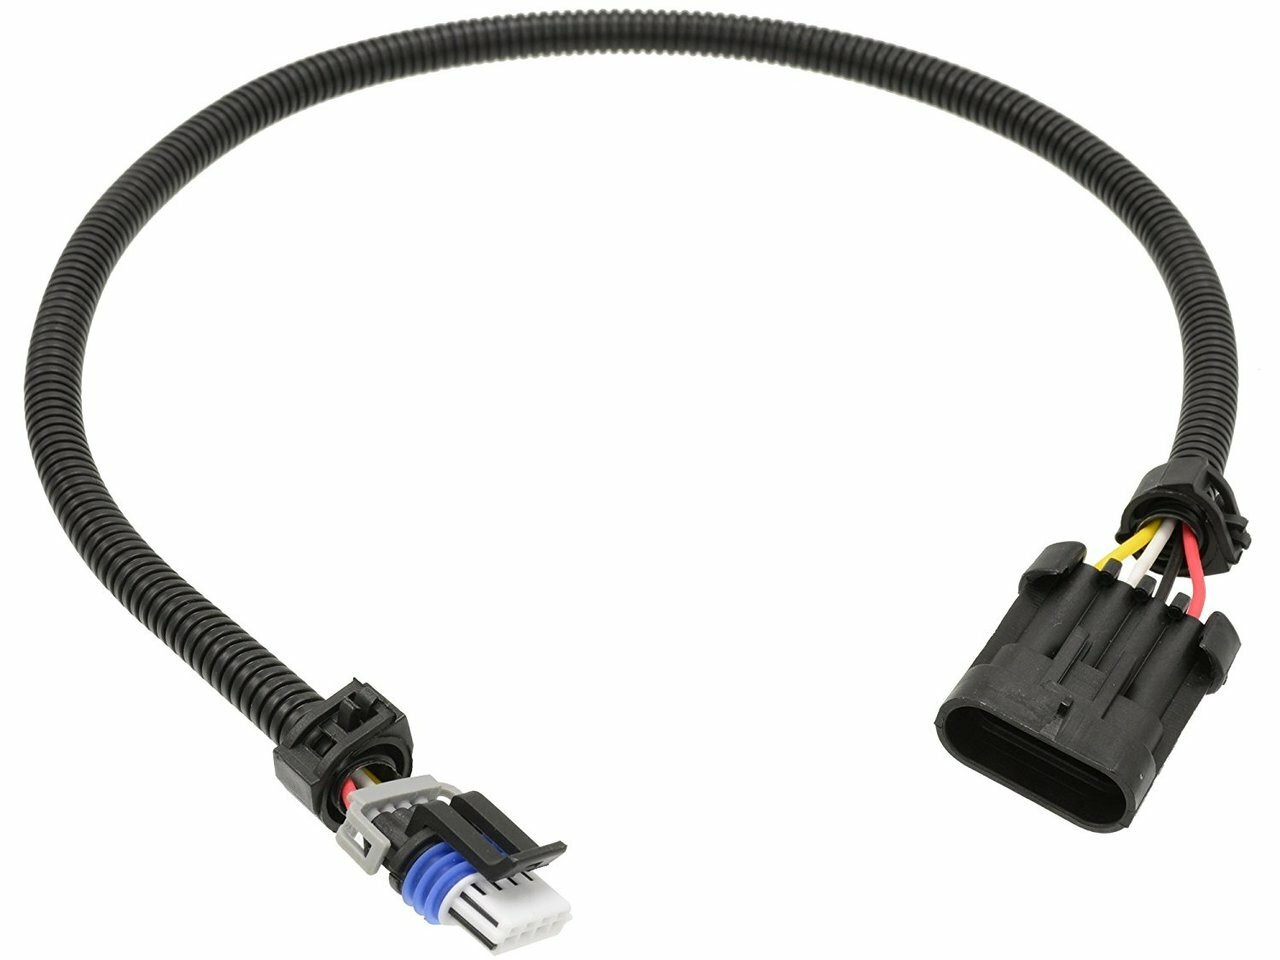 Lt1 Distributor Wiring Harness Electrical Diagrams 1992 1993 1994 Optispark Non Vented Connector Engine